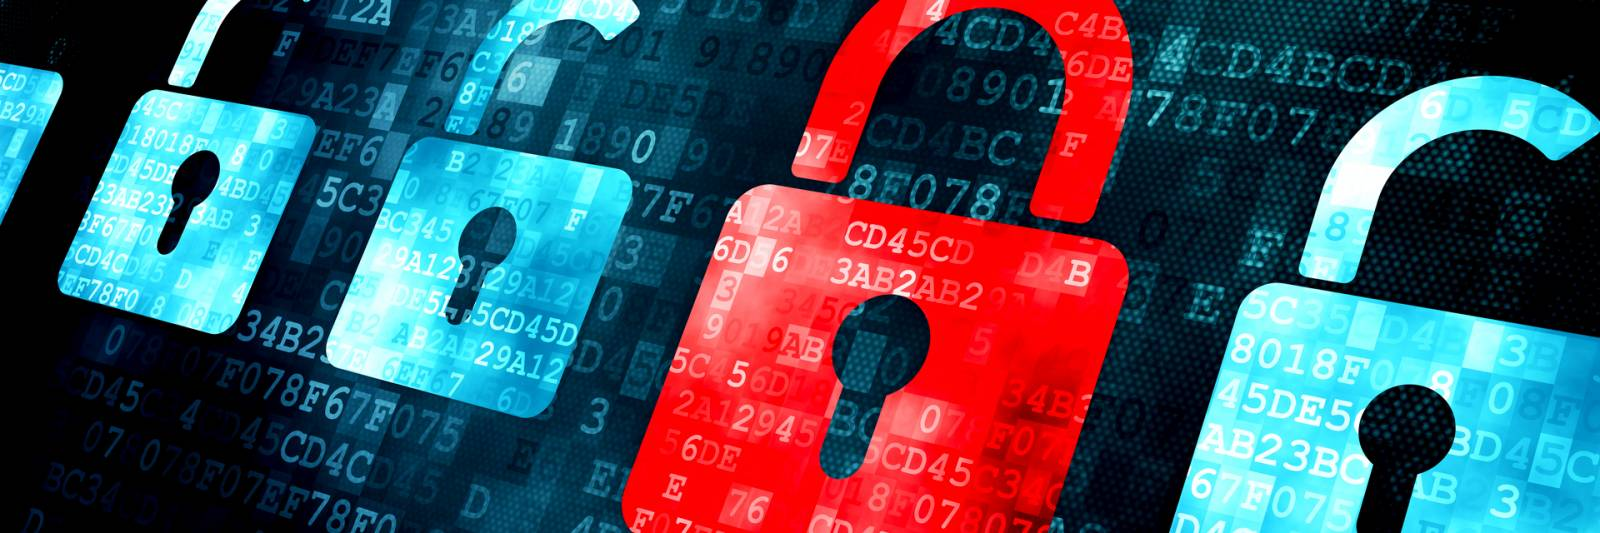 Aws Ciso Urges Companies To Adopt A Zero Trust Security Approach